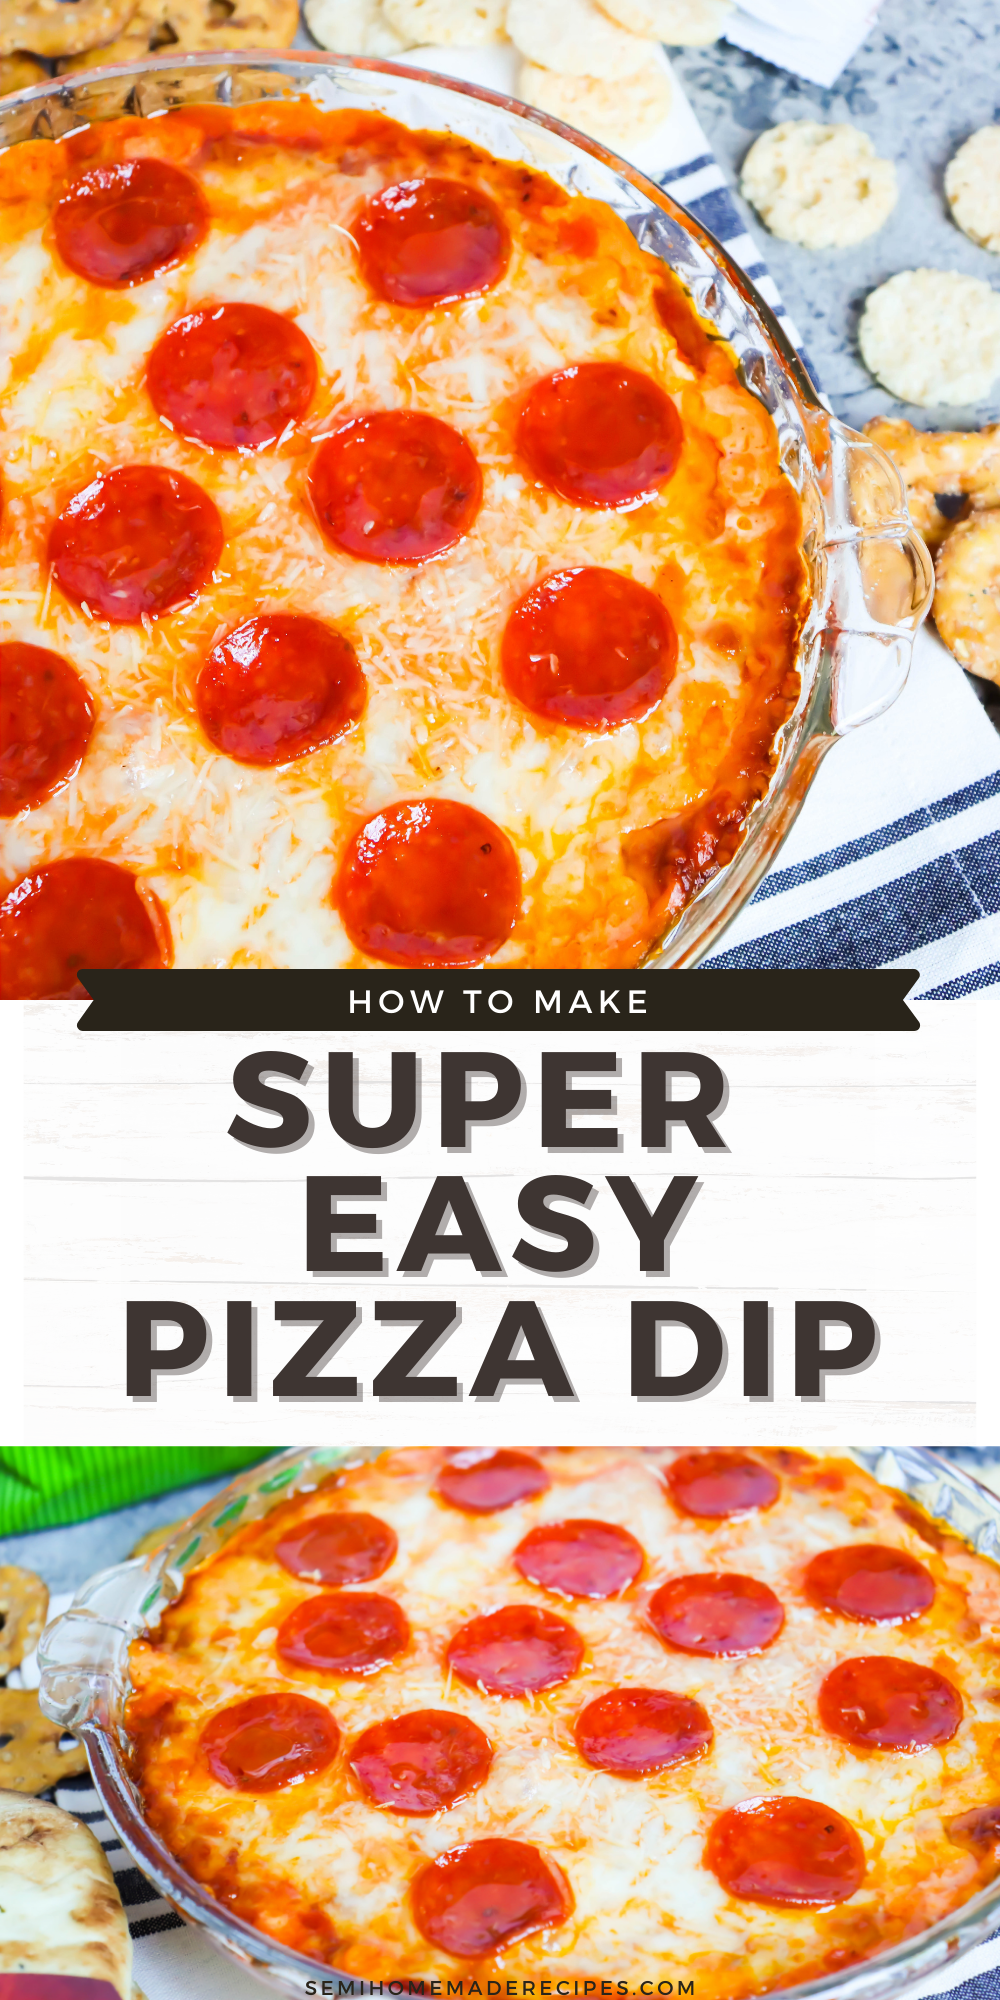 Pizza Dip – layers of cream cheese, parmesan cheese, mozzarella cheese and pizza sauce are topped with more cheese and pepperoni to make this easy pizza party dip! Perfect for serving with pretzels, naan bread, or crispy cheese wisps.